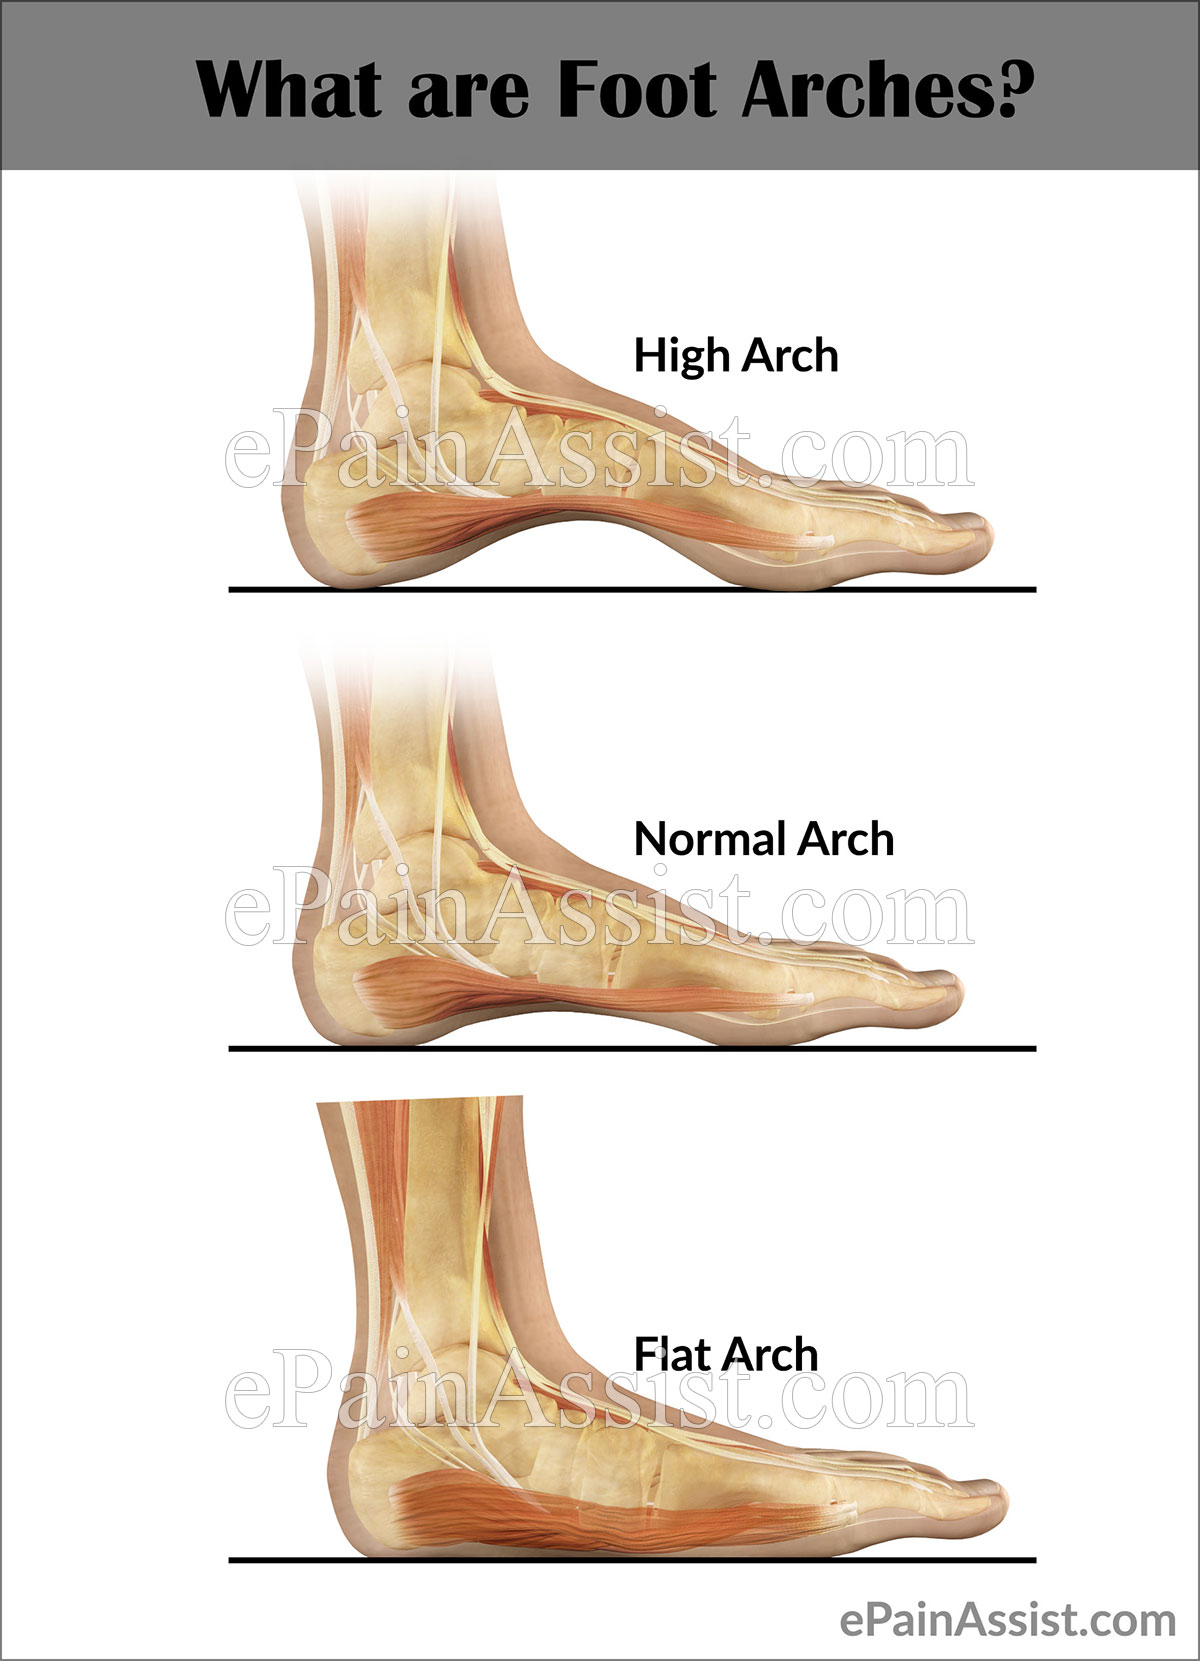 What are Foot Arches?